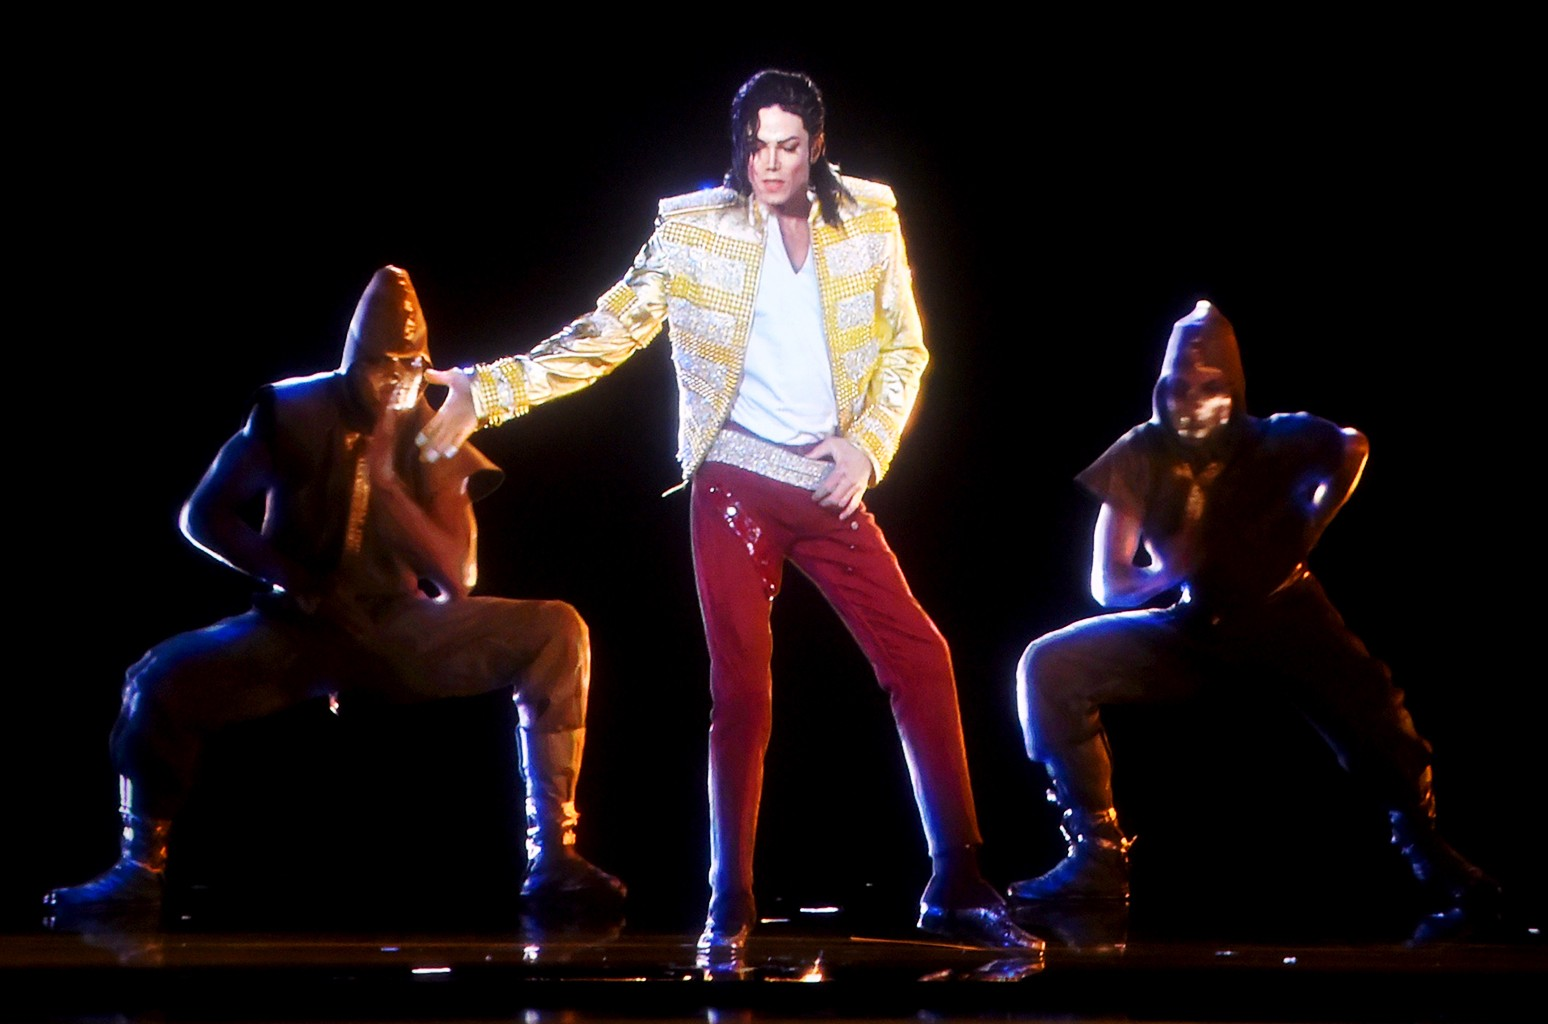 A holographic image of Michael Jackson performs onstage during the 2014 Billboard Music Awards at the MGM Grand Garden Arena on May 18, 2014 in Las Vegas.